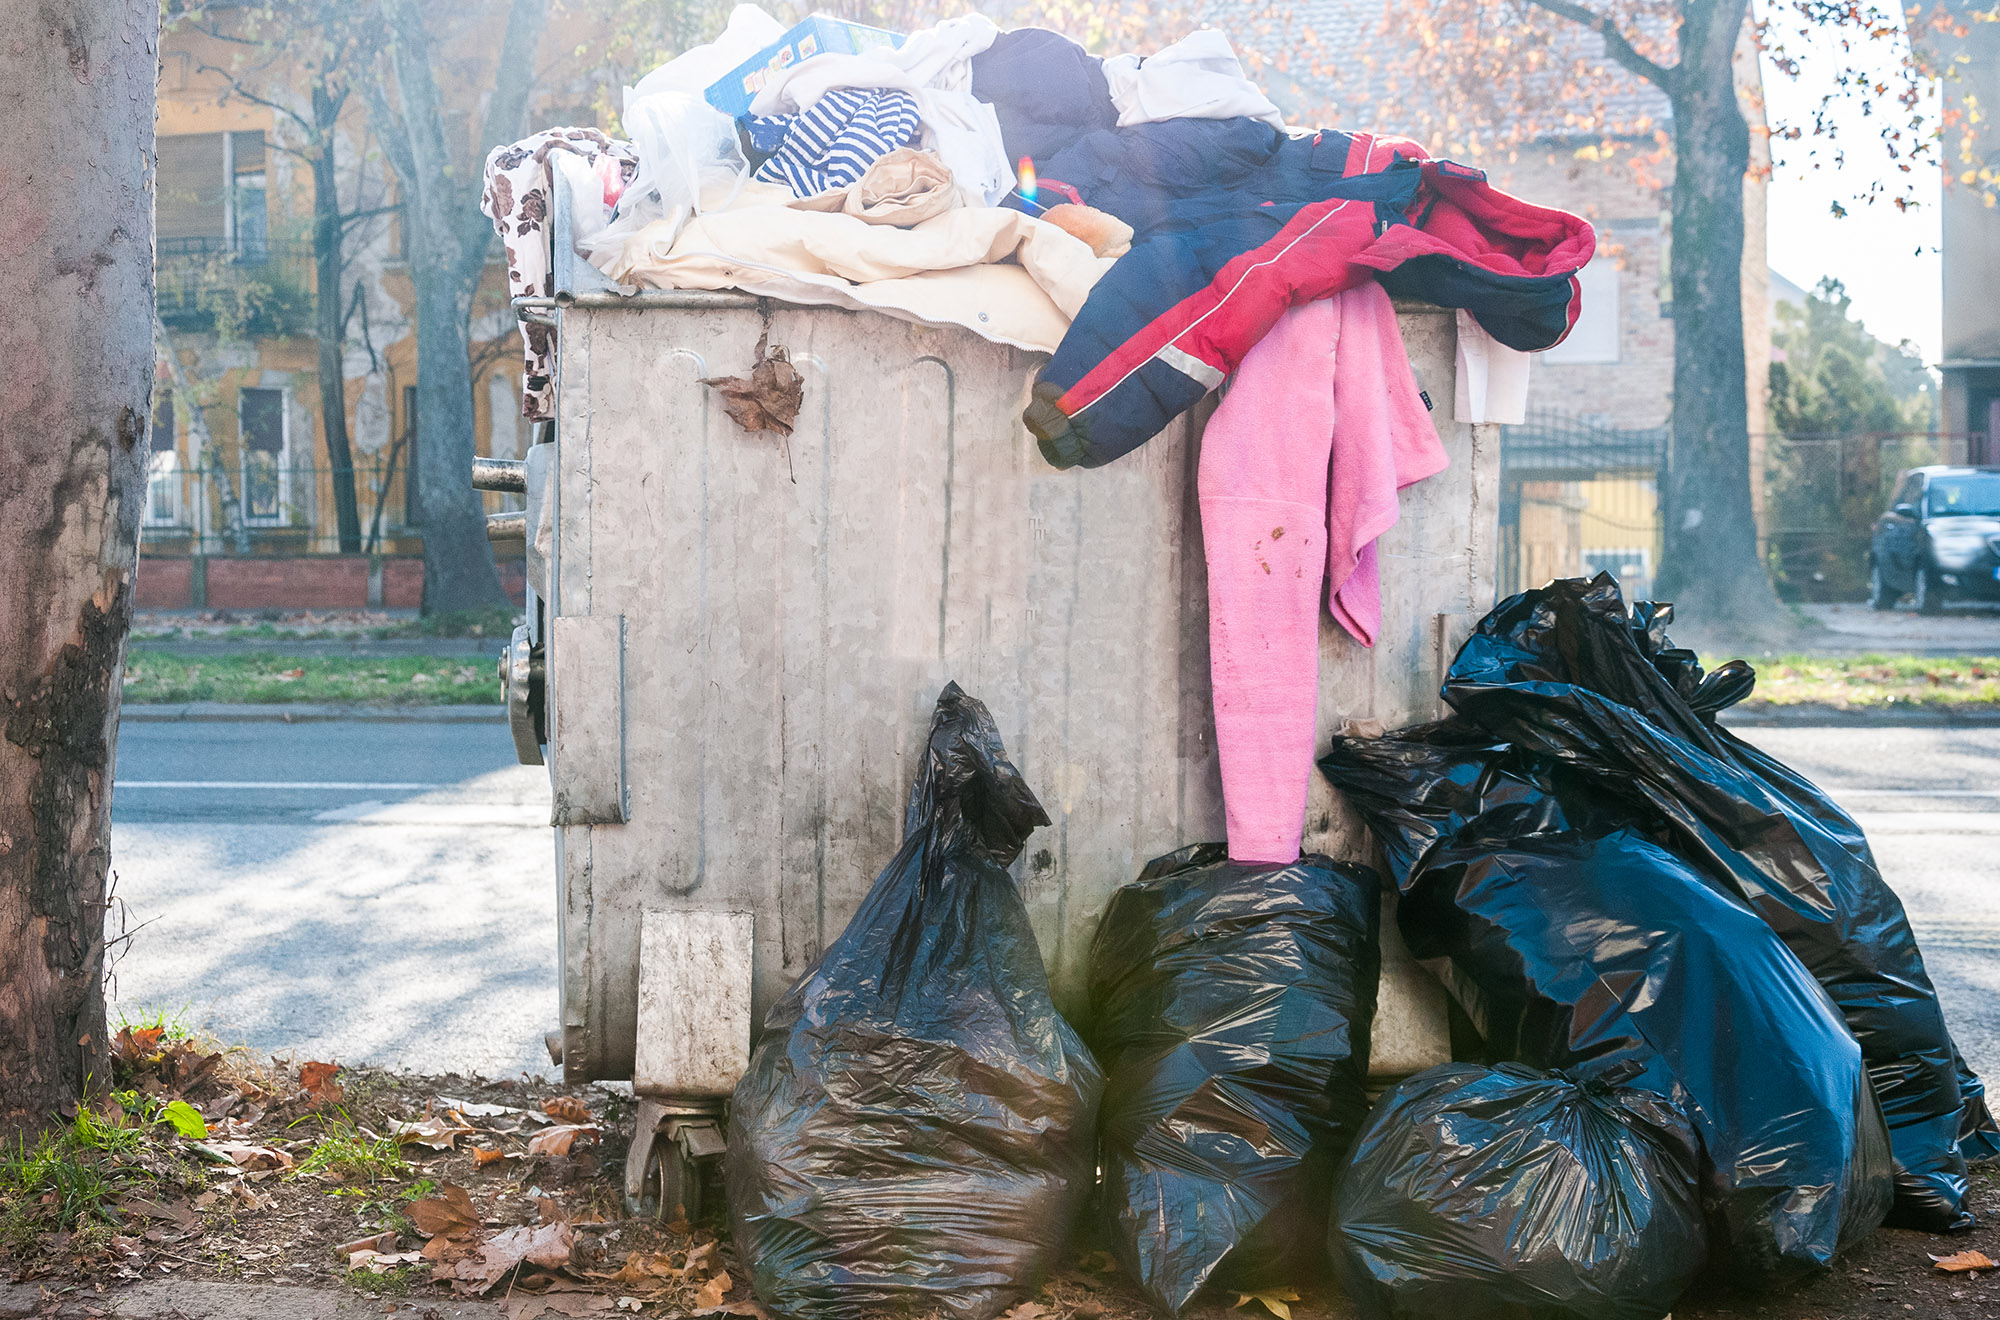 Bags of clothes in trash